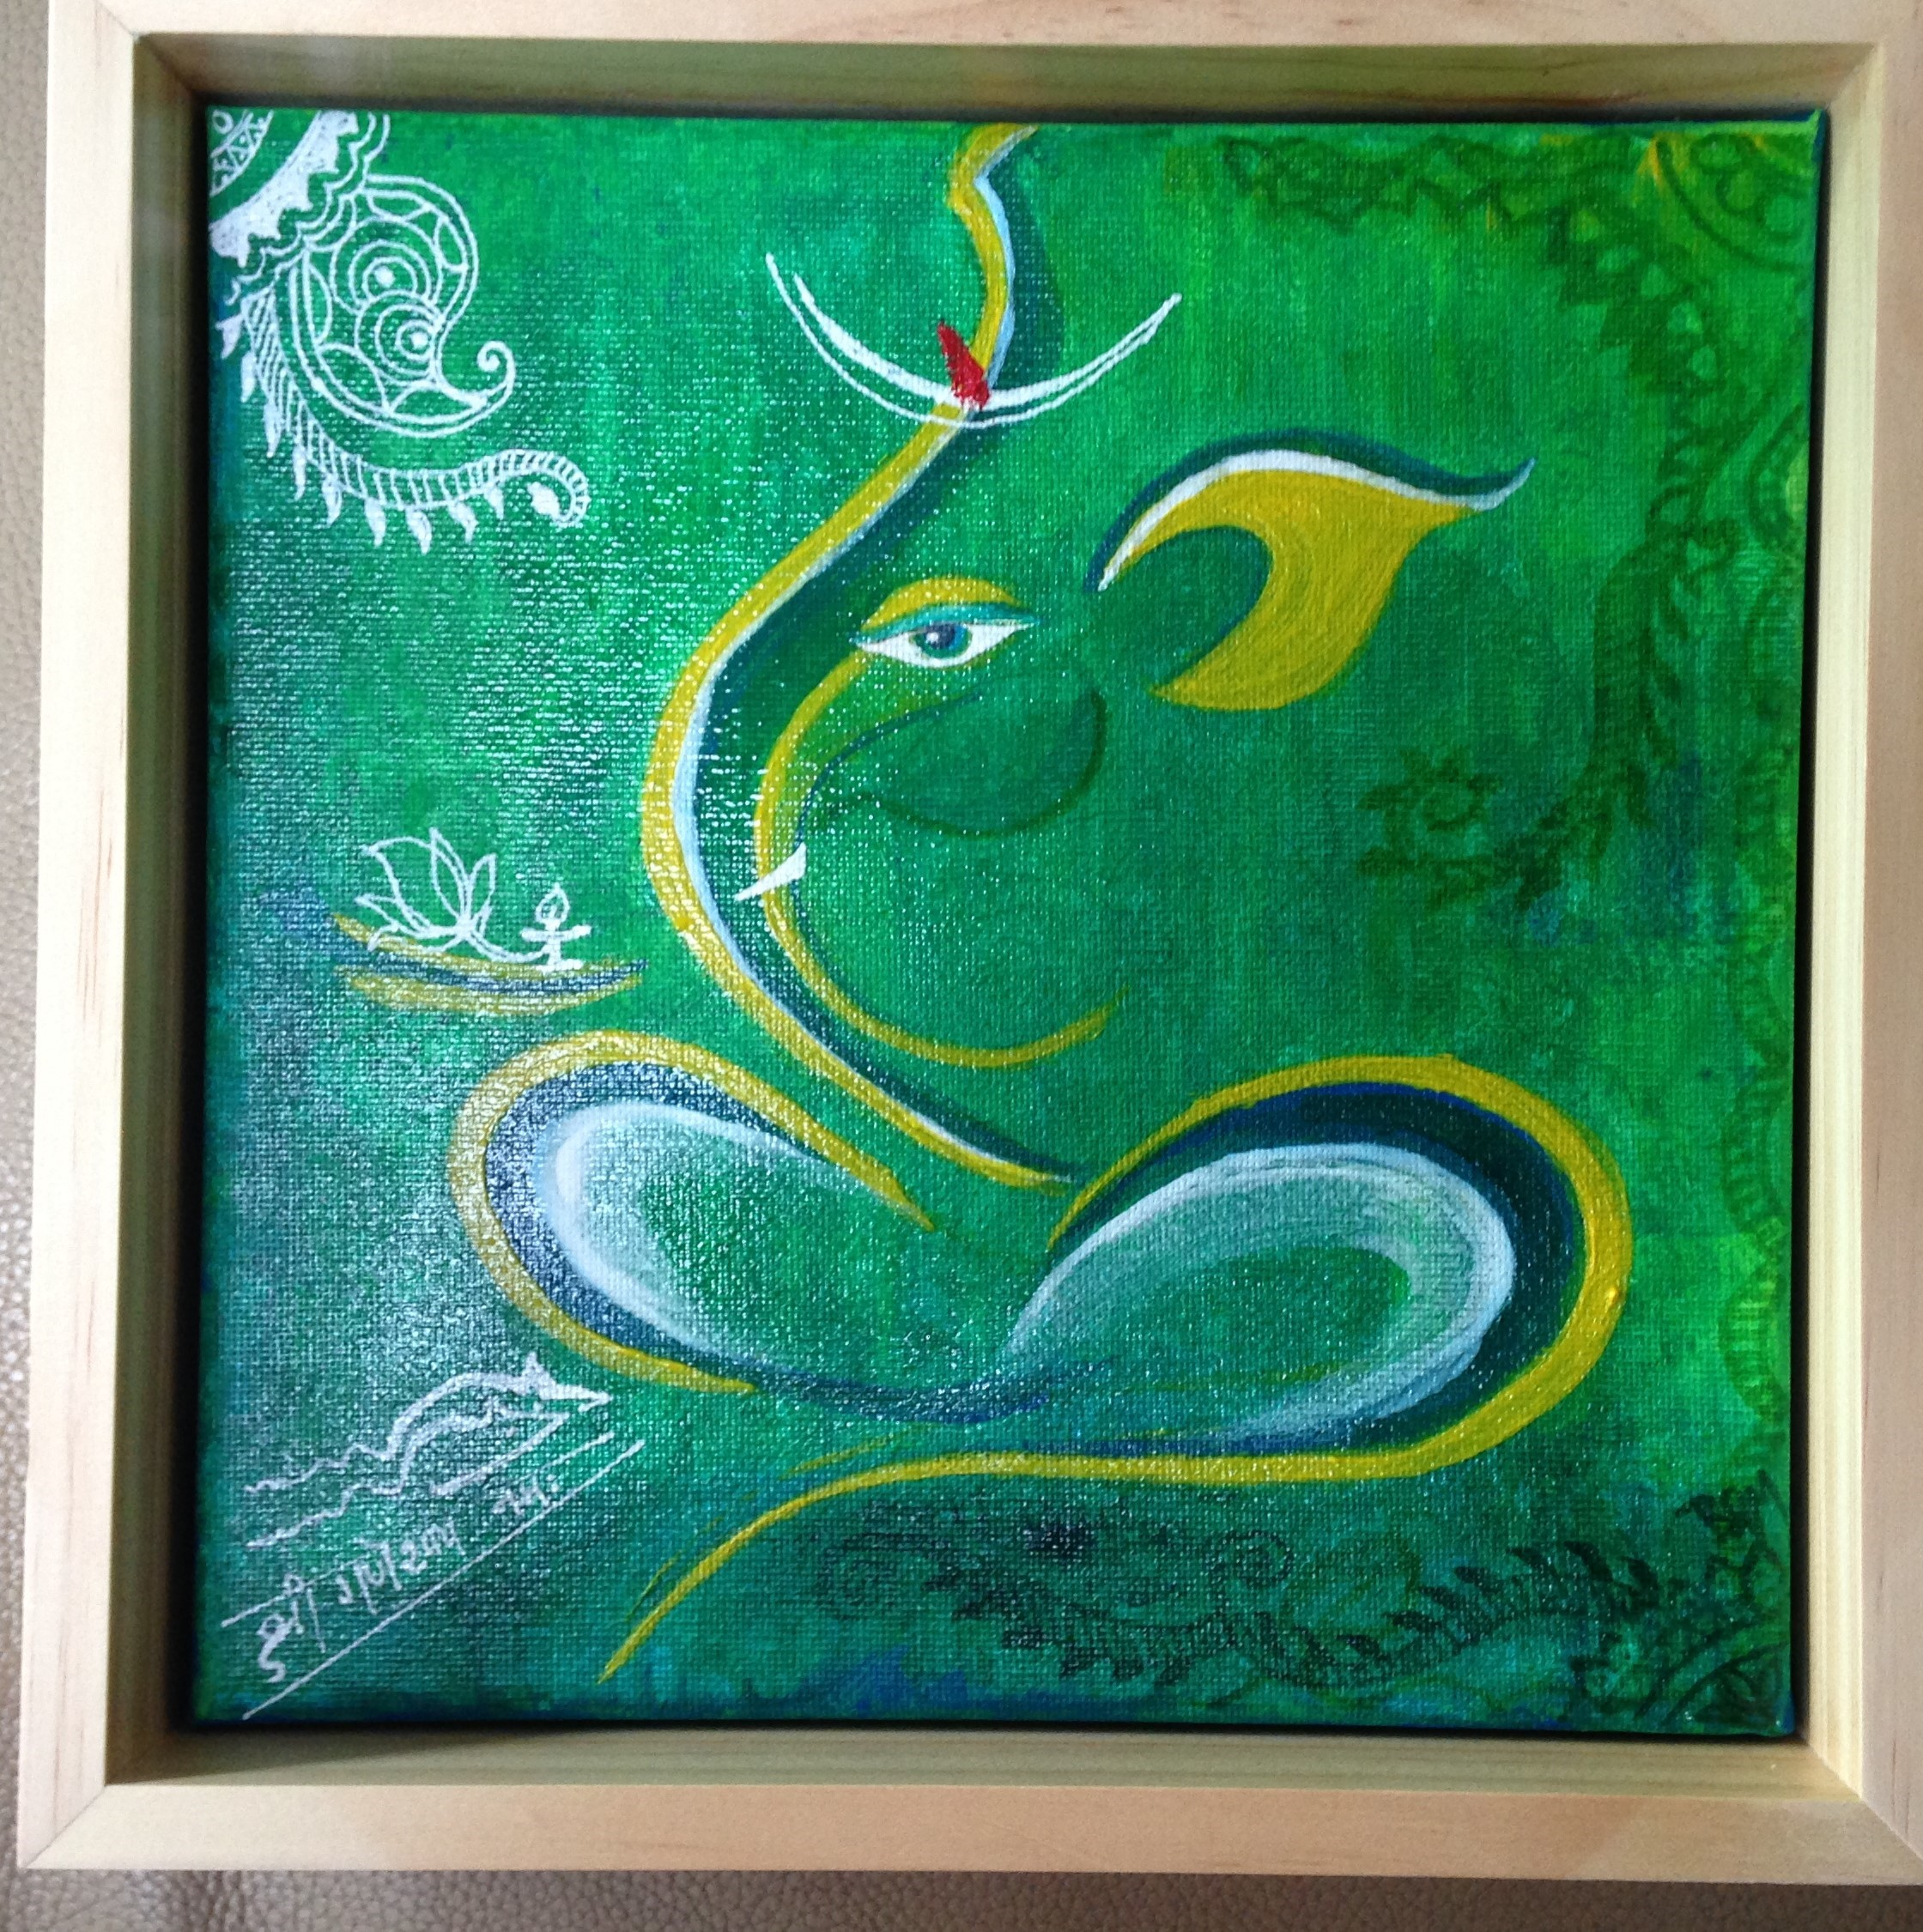 Green Ganesh - Held in a private collect